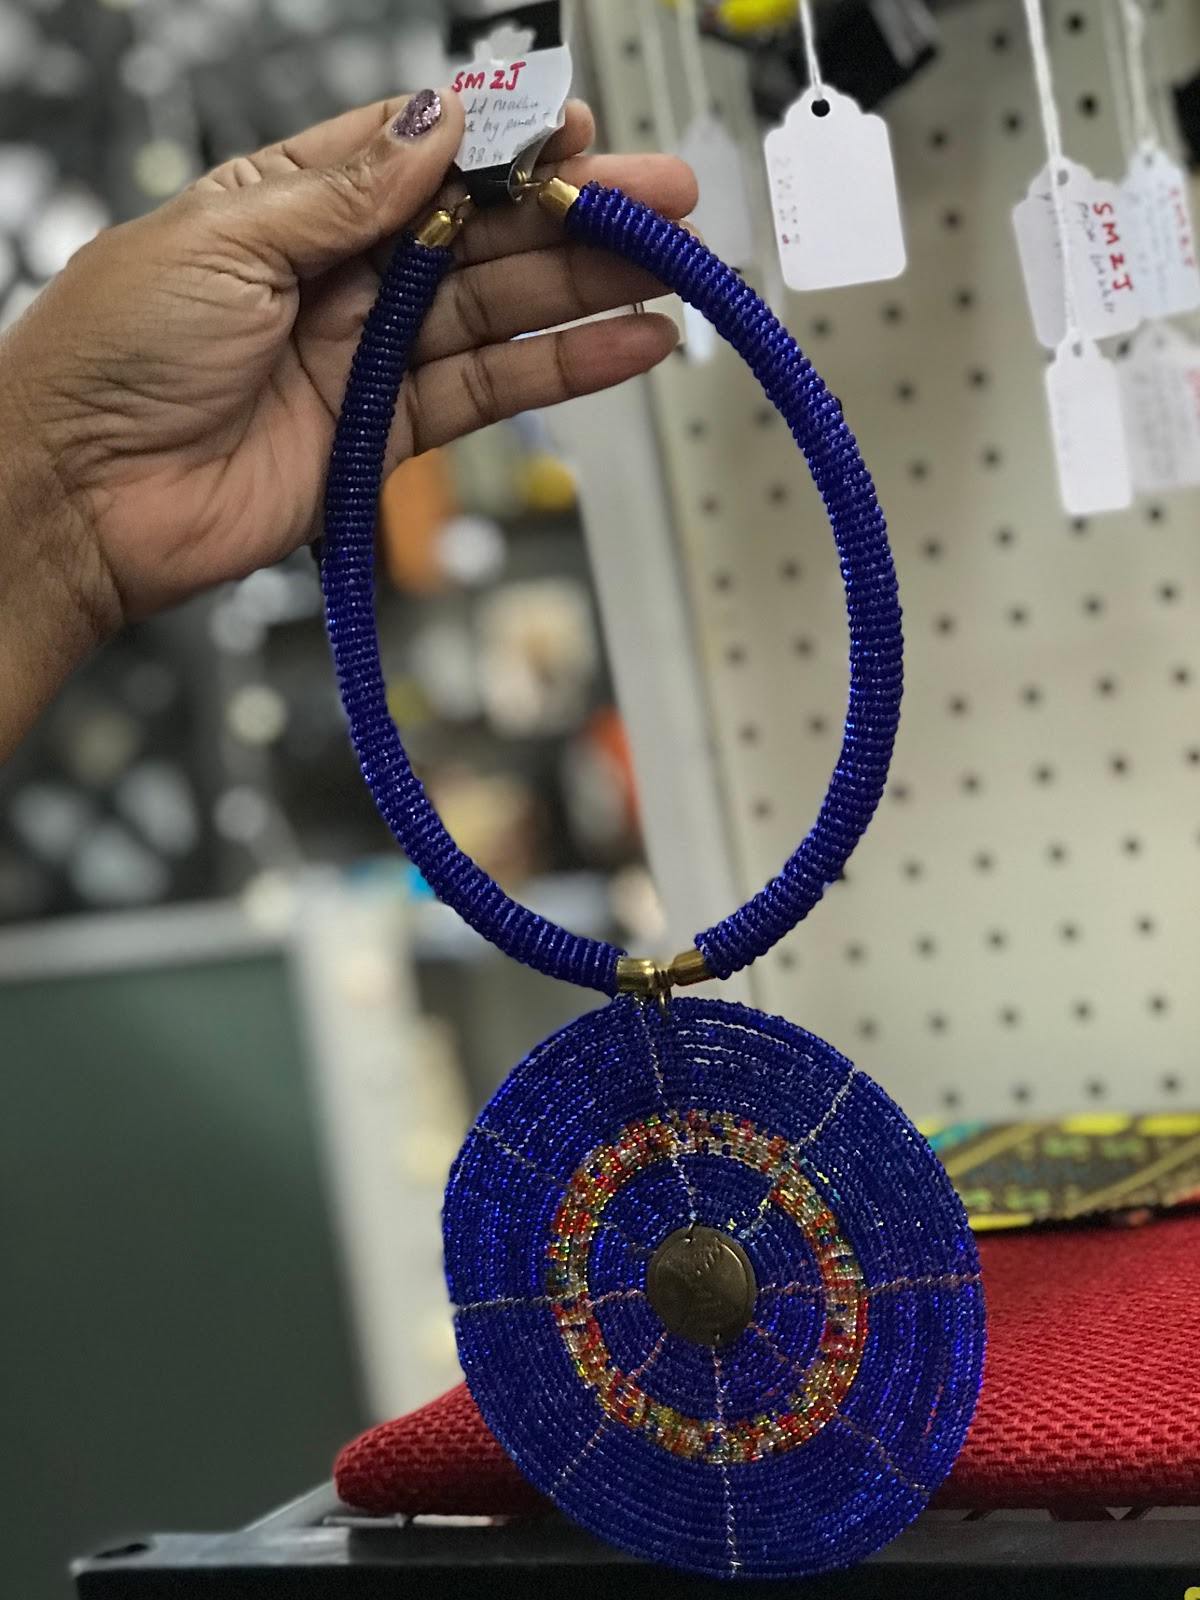 Image: Bold Blue necklace that Tangie will be using to spice up her new wardrobe. Spice And Color On Color On Color!